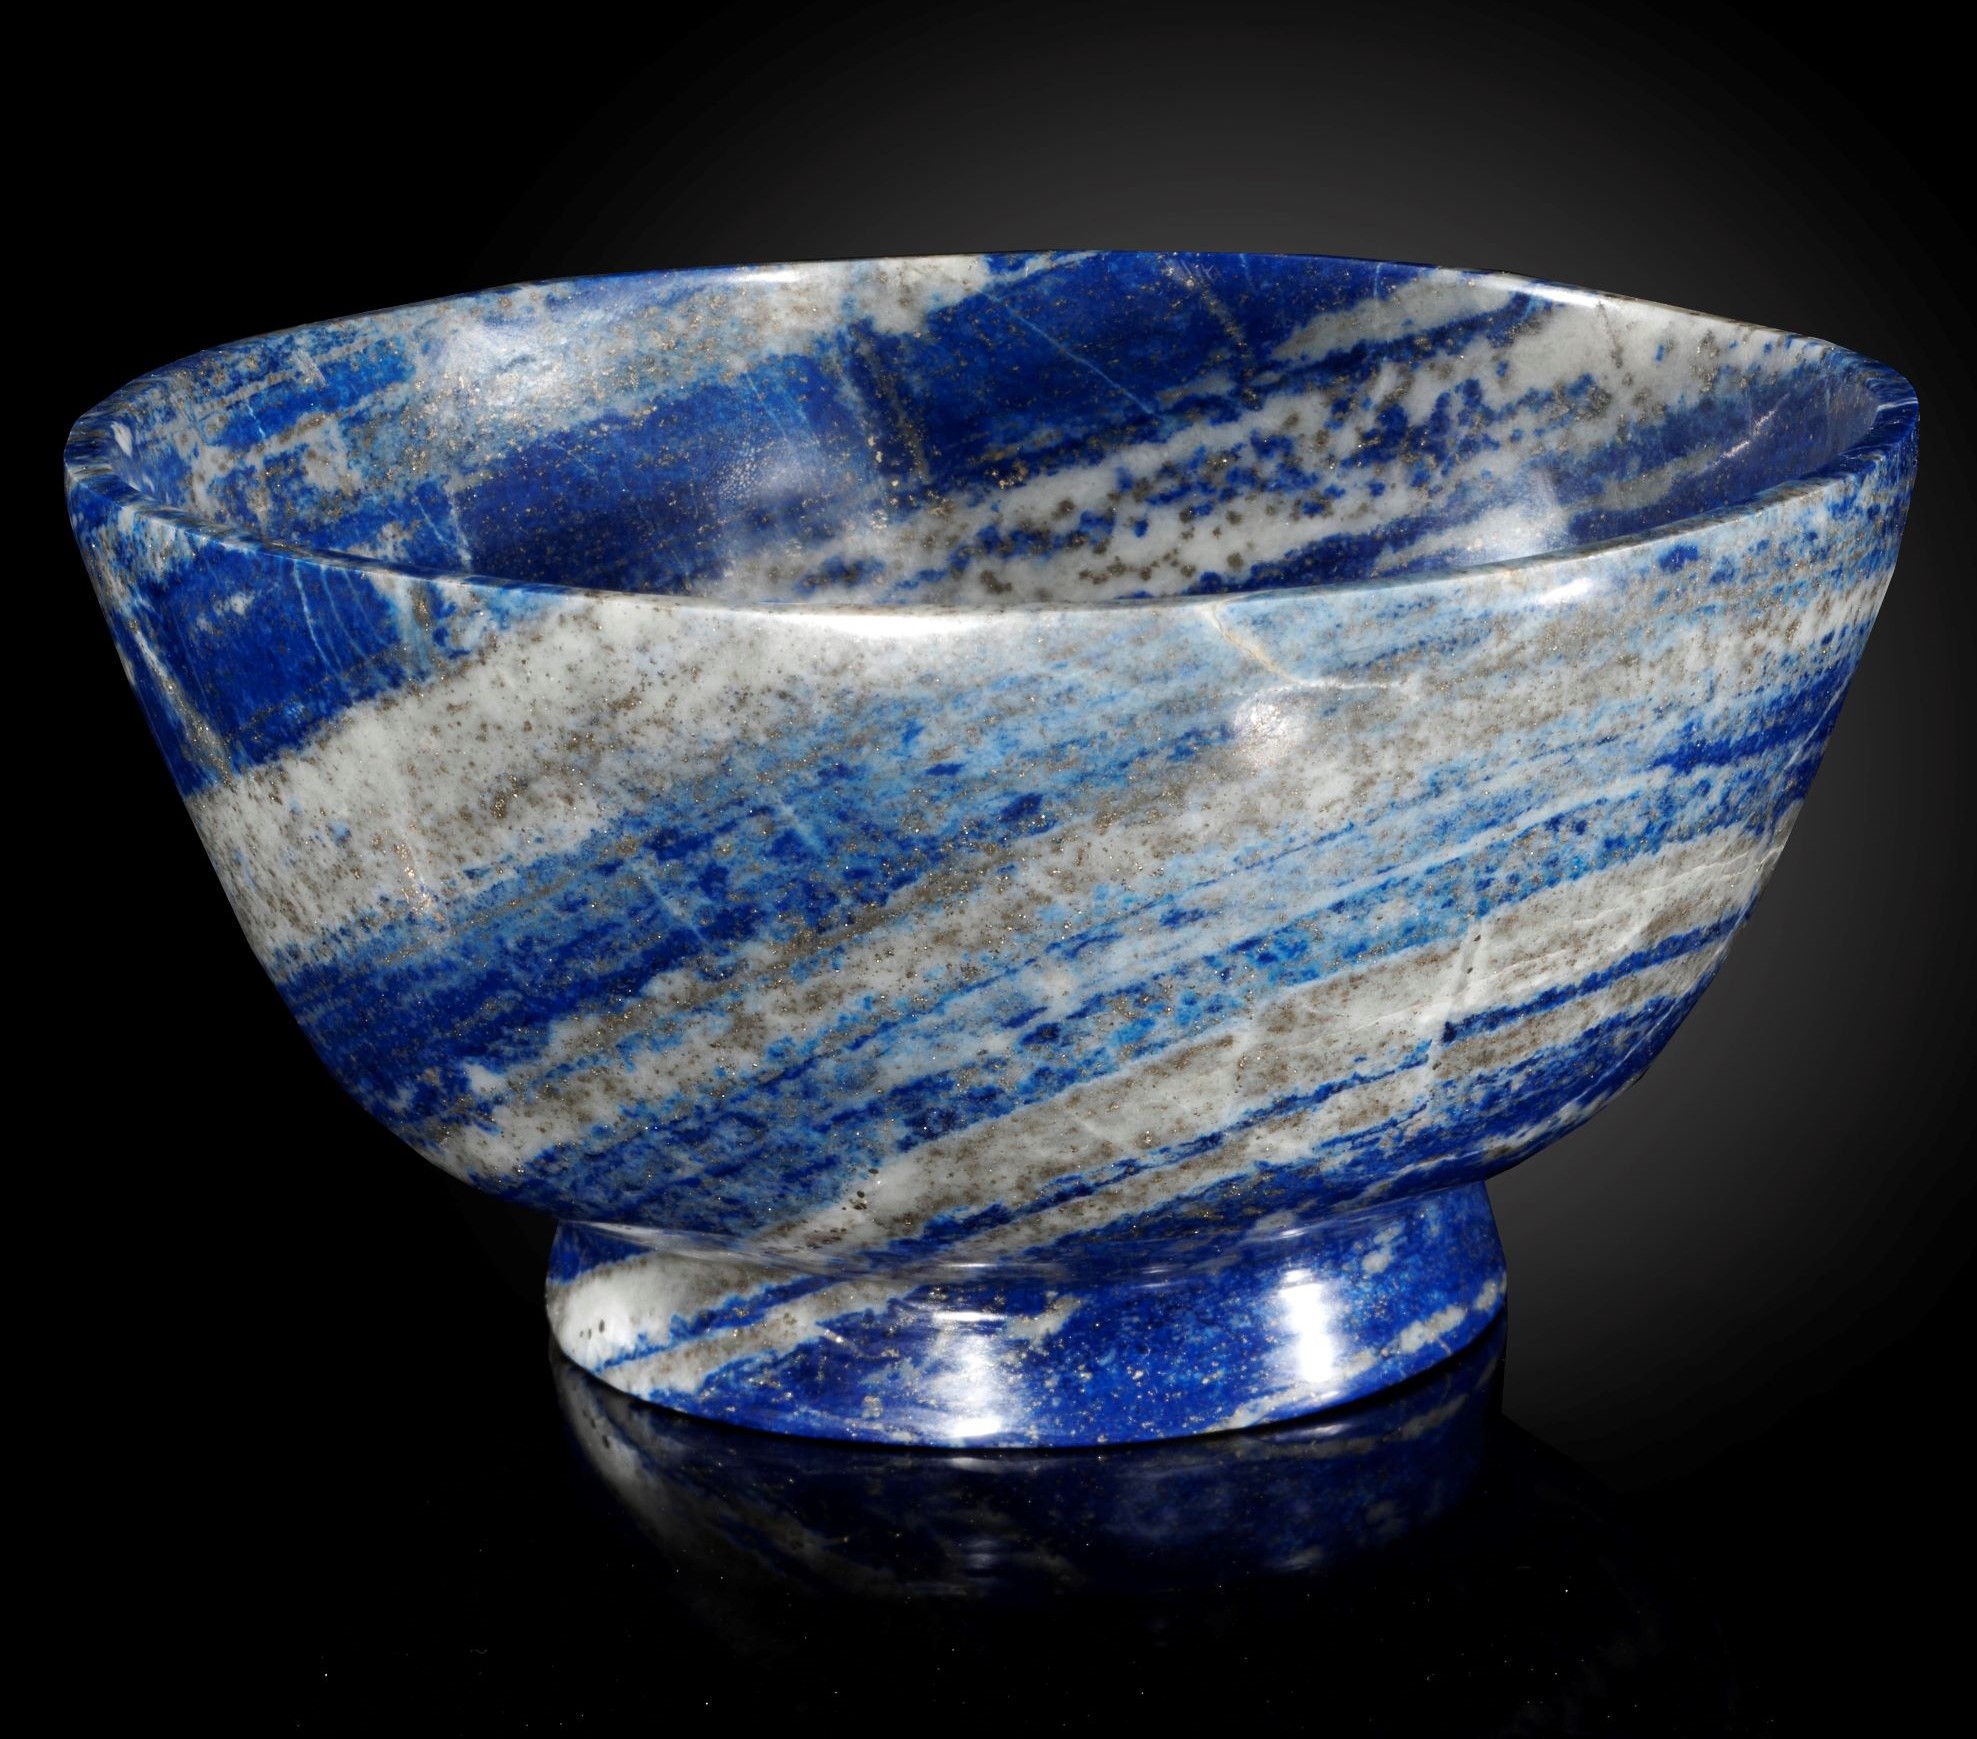 Lot 21 - Interior Design/Minerals: A Lapis lazuli bowl, in presentation box, 16cm diameter, 880 grams